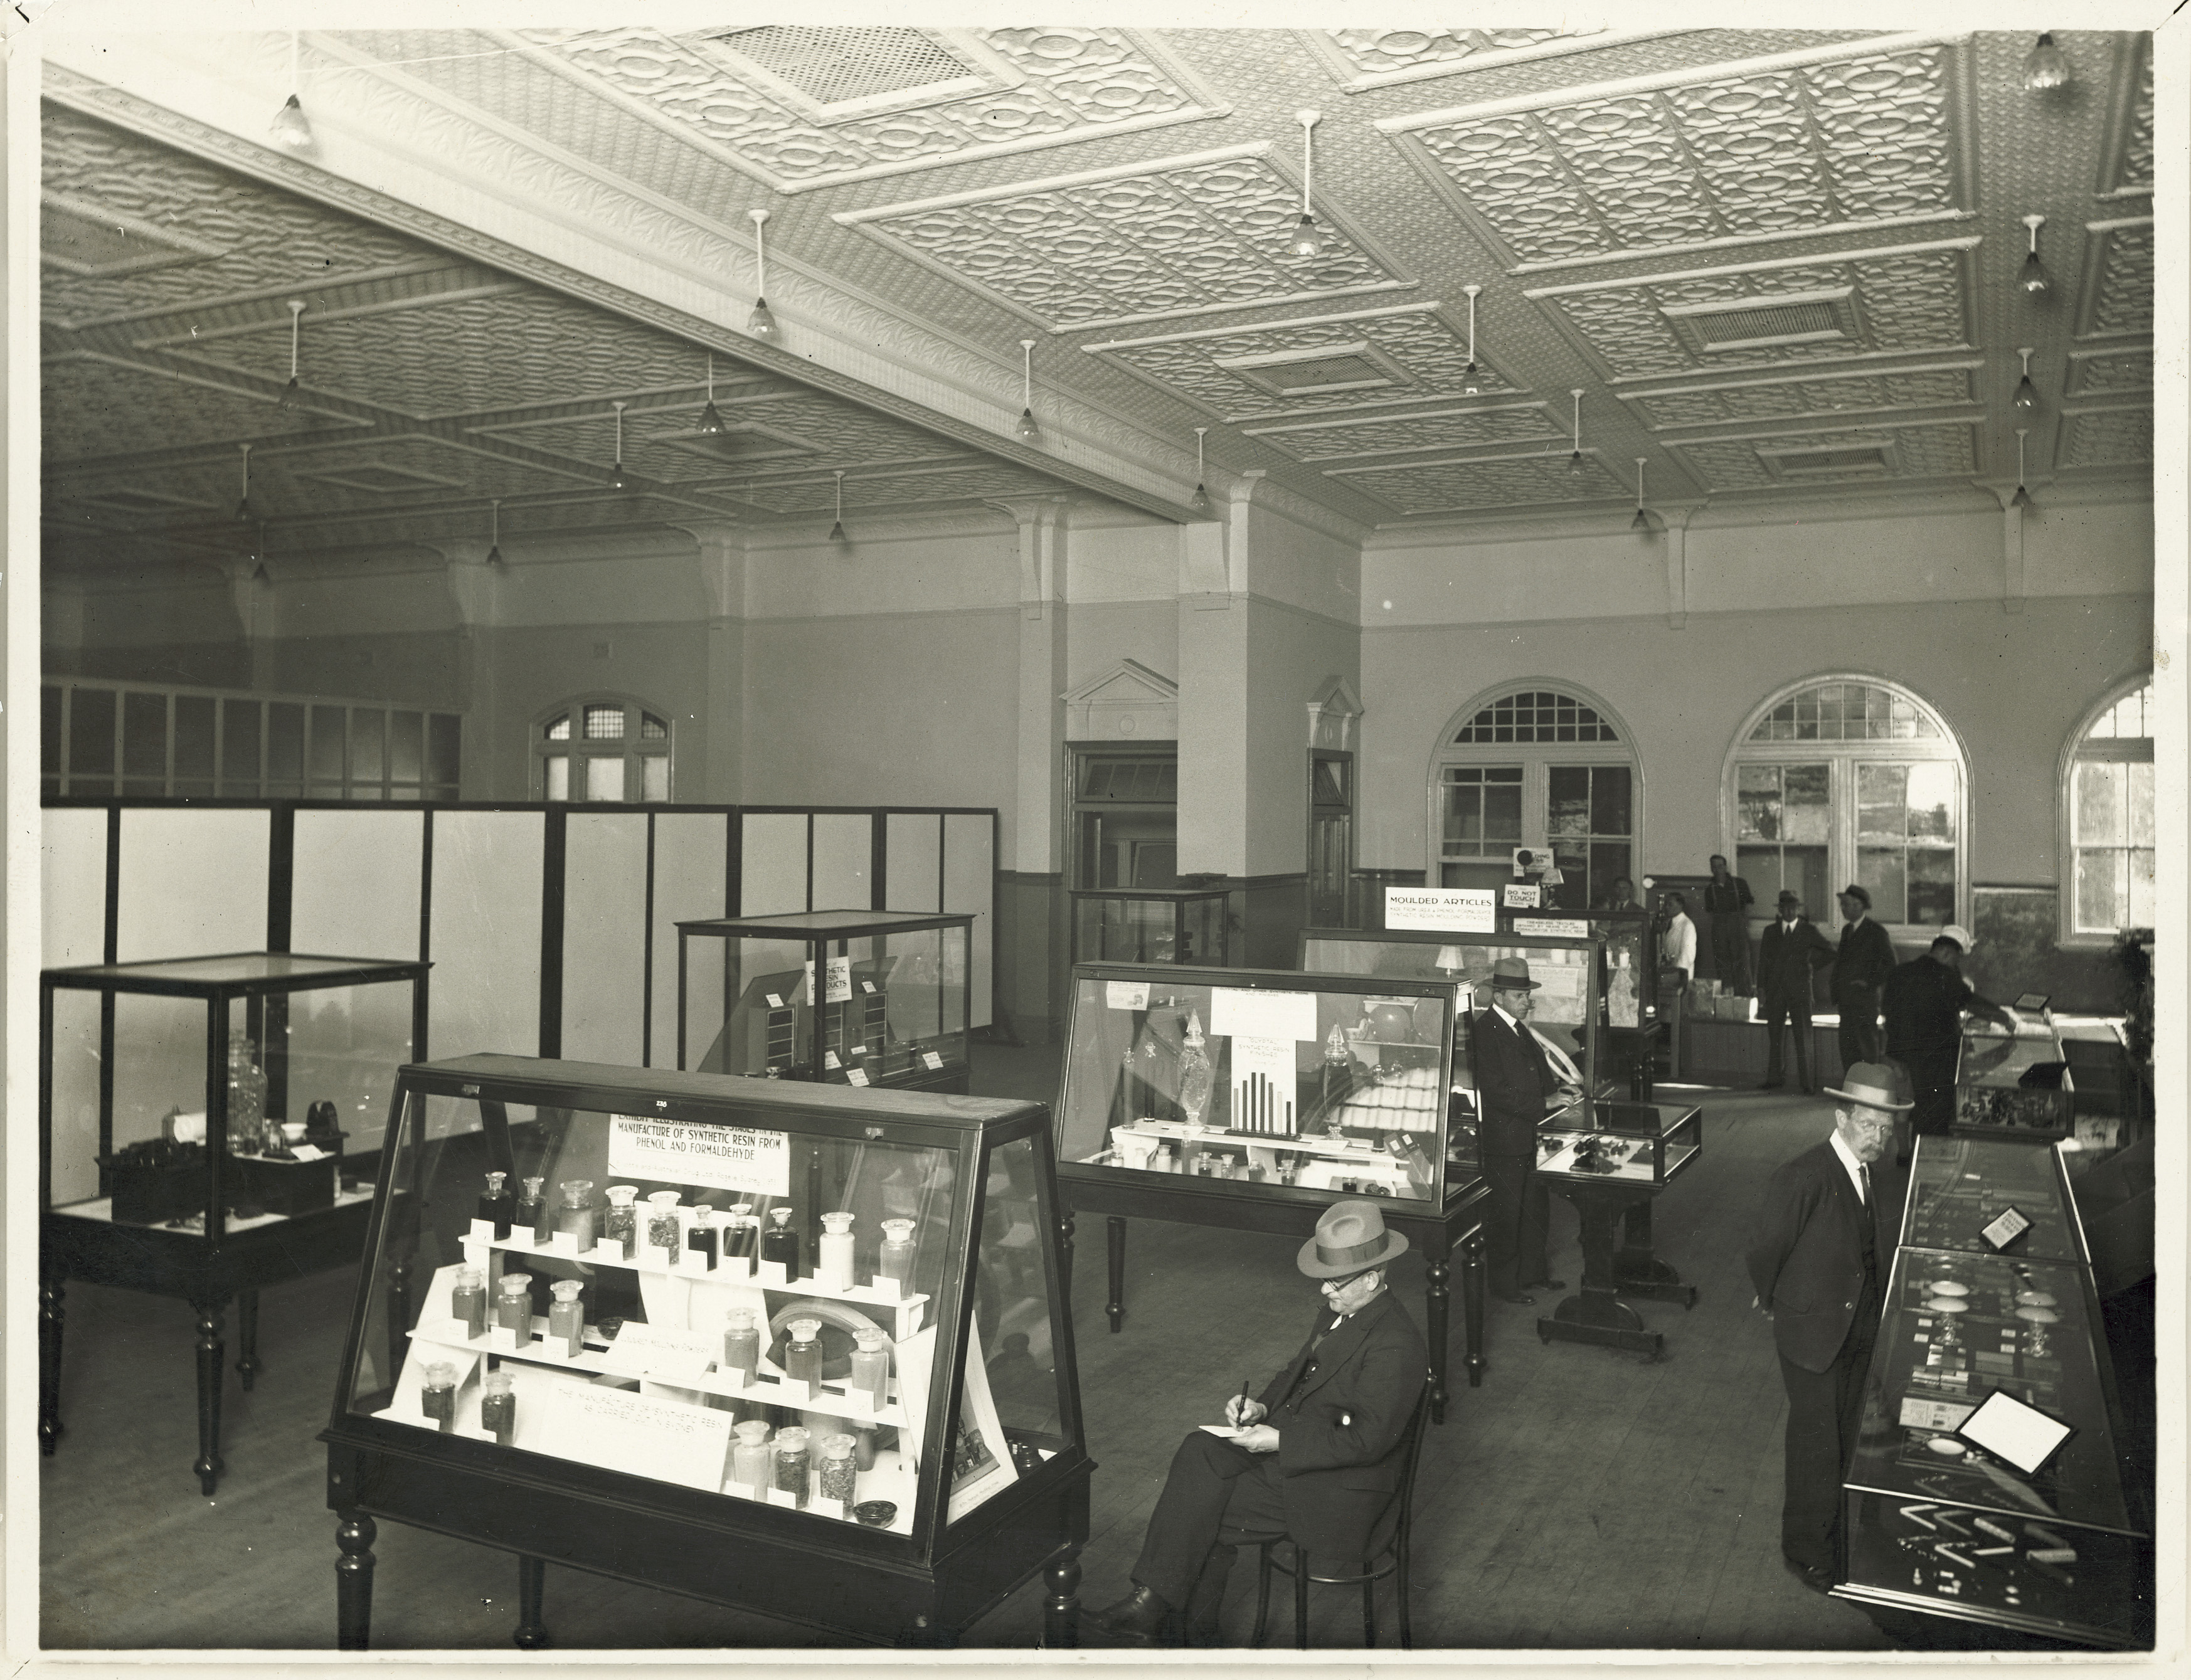 First exhibition of plastics in Australia, Turner Hall, Sydney Technical College 1934 [MAAS Collection]